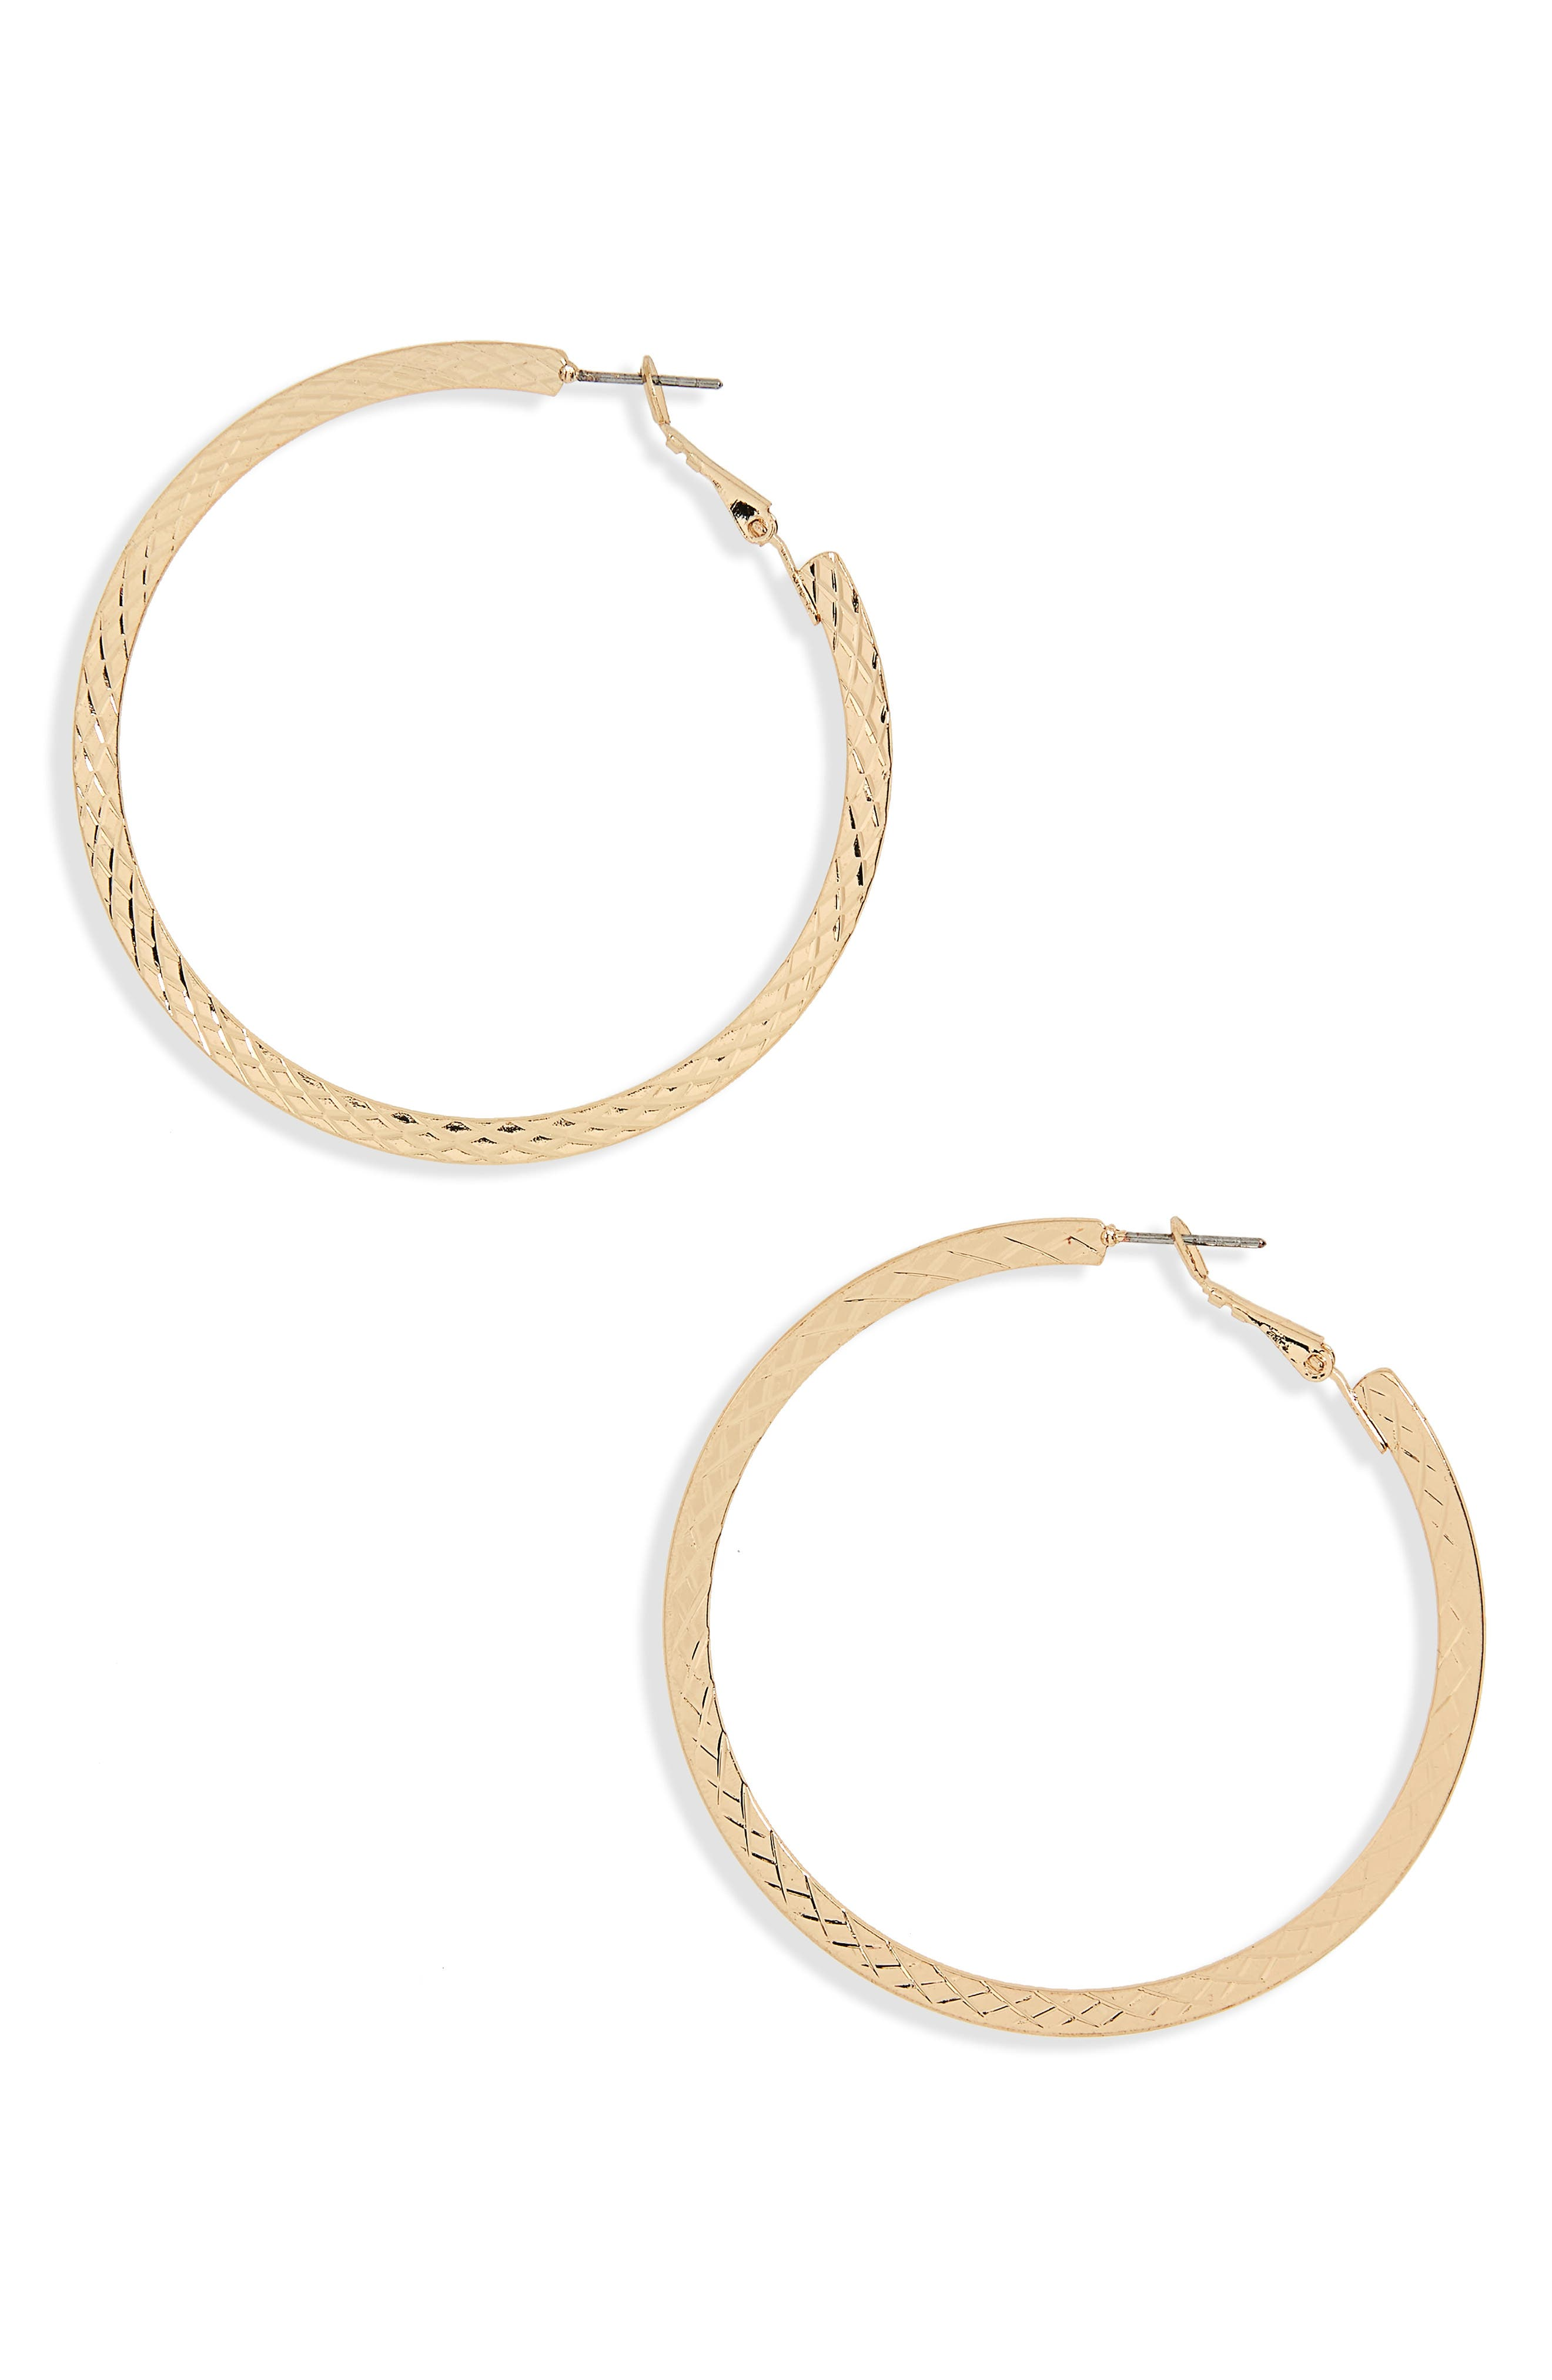 Etched Flat Hoop Earrings,                             Main thumbnail 1, color,                             Gold